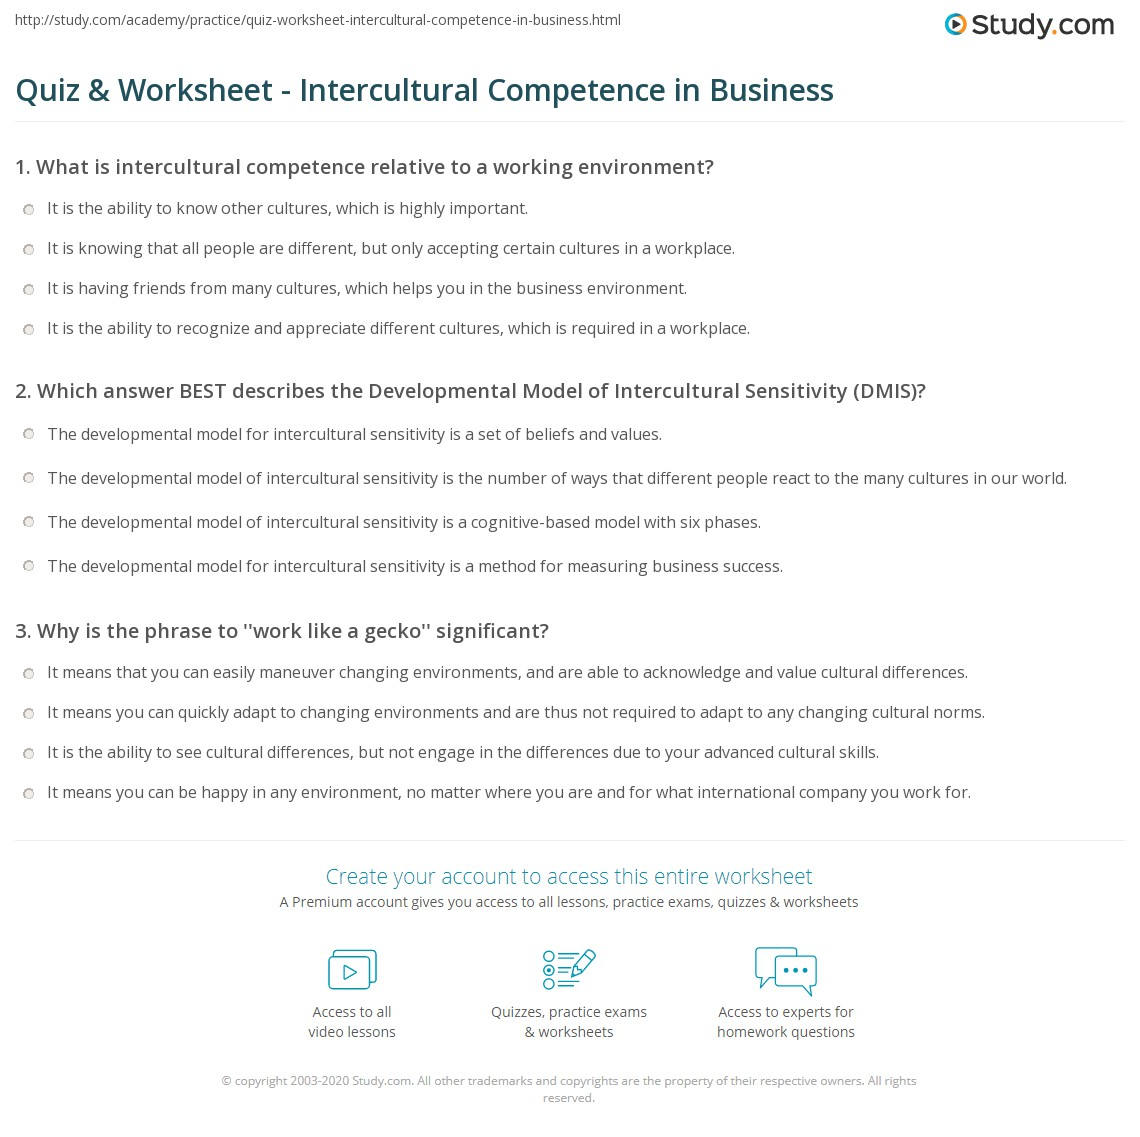 print developing intercultural competence in business worksheet